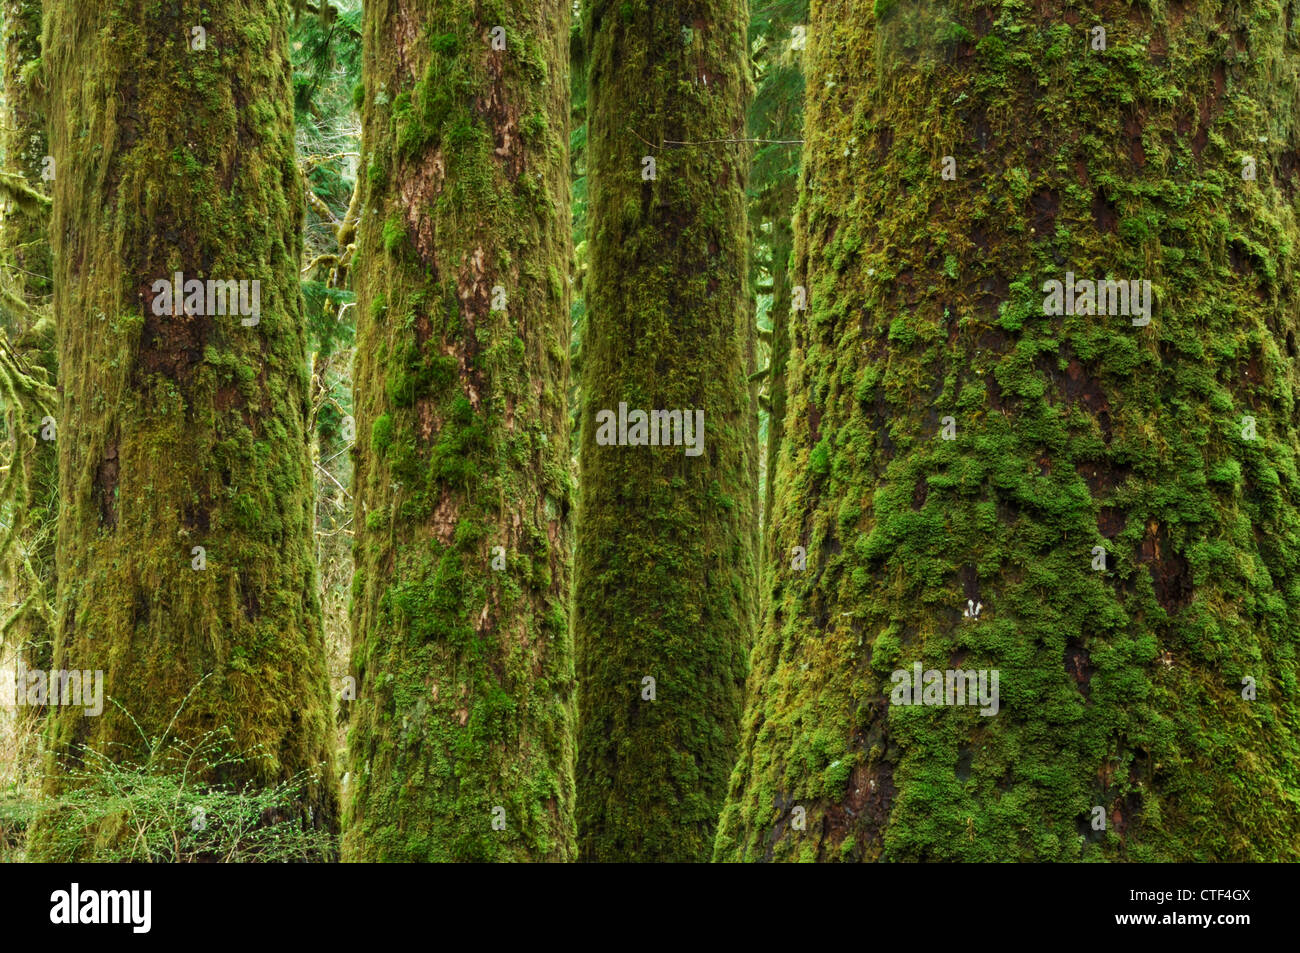 Mossy forest in the Stillaguamish River Valley, Mount Baker-Snoqualmie National Forest, Washington, USA - Stock Image